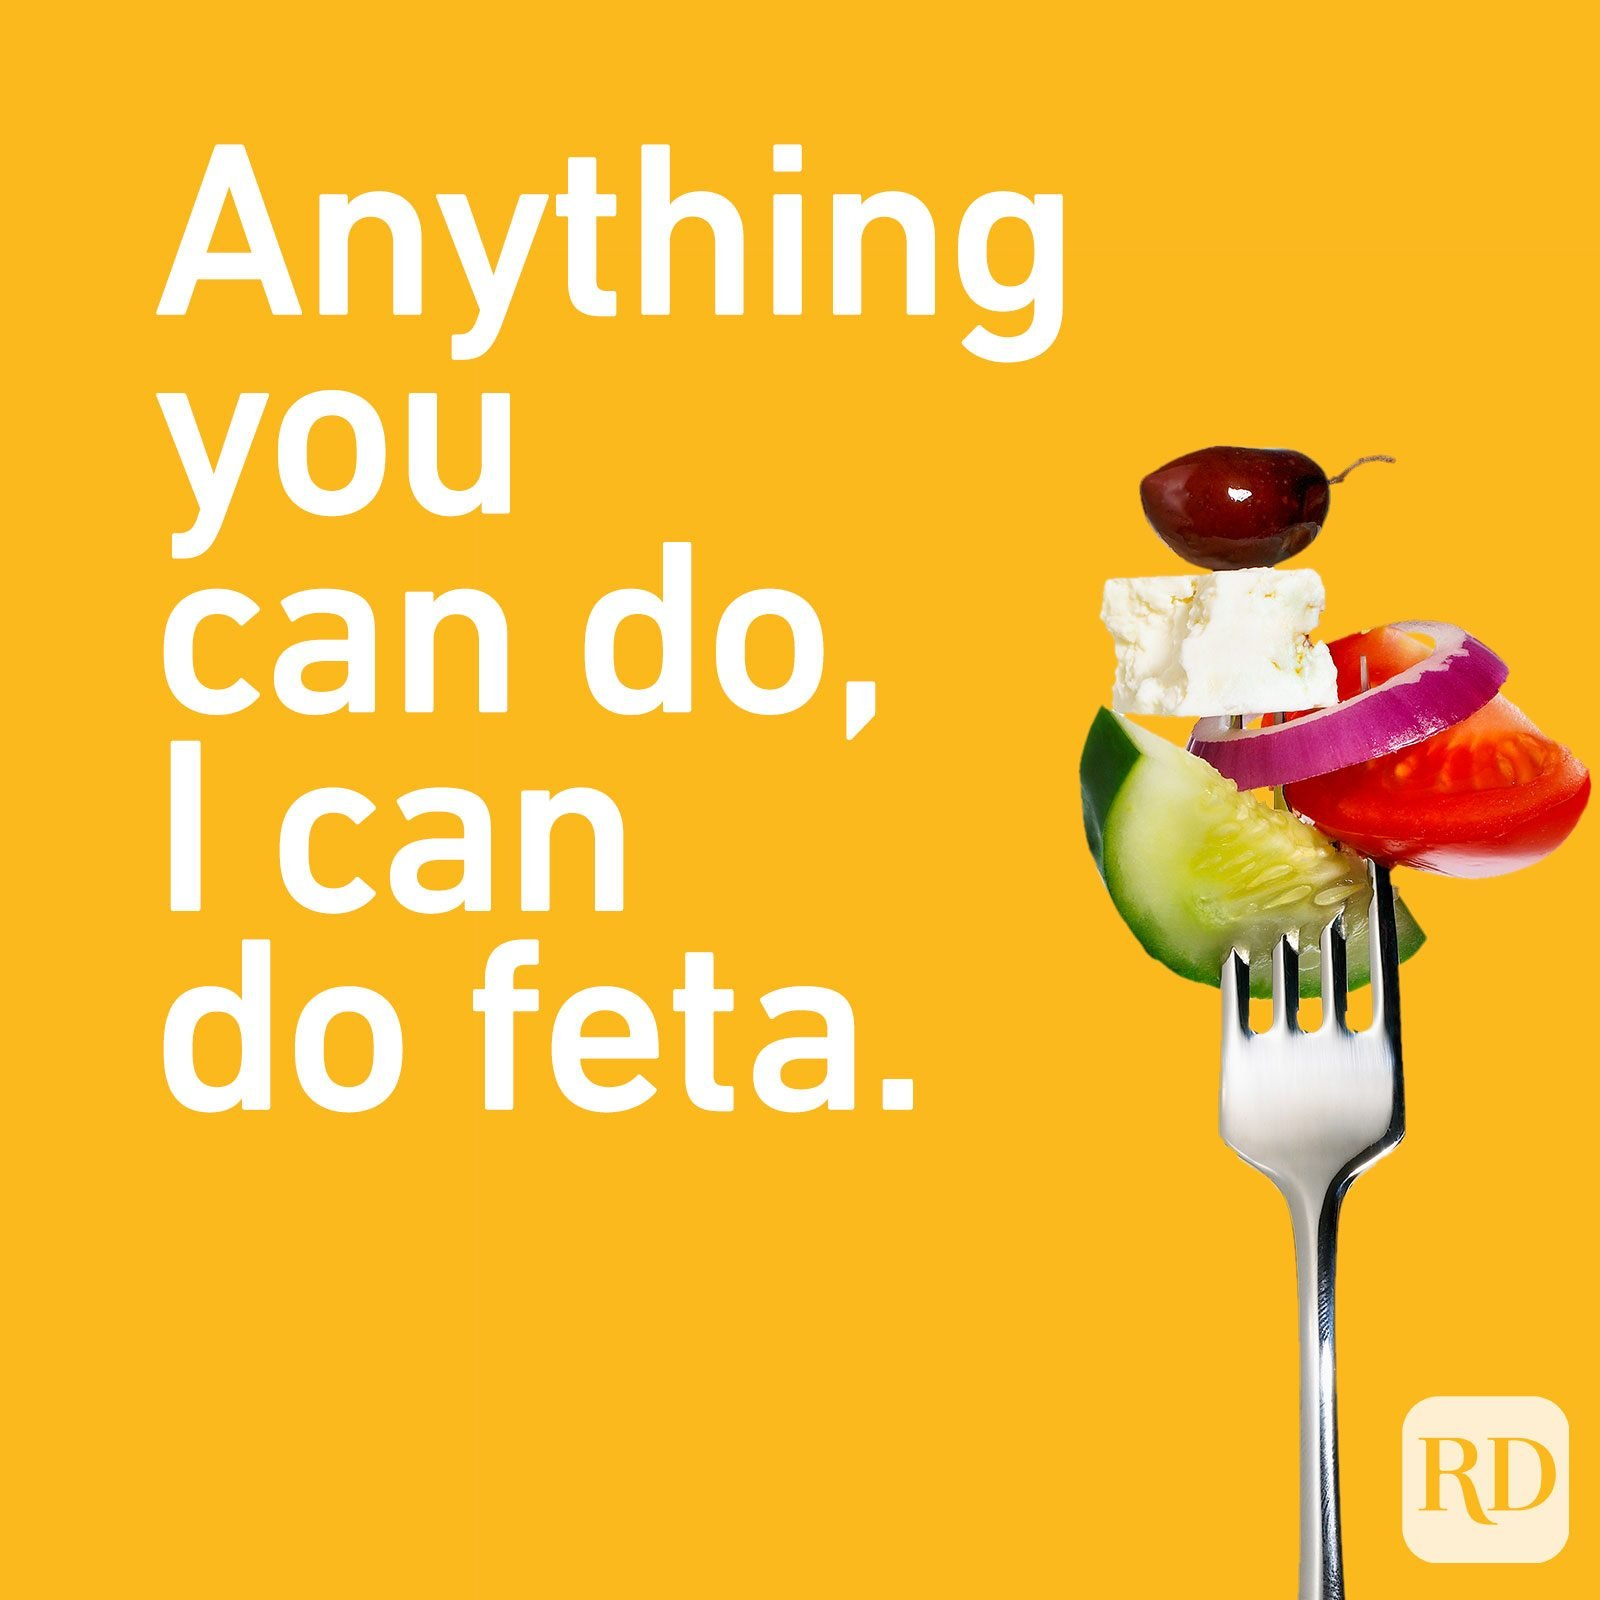 Anything you can do, I can do feta.